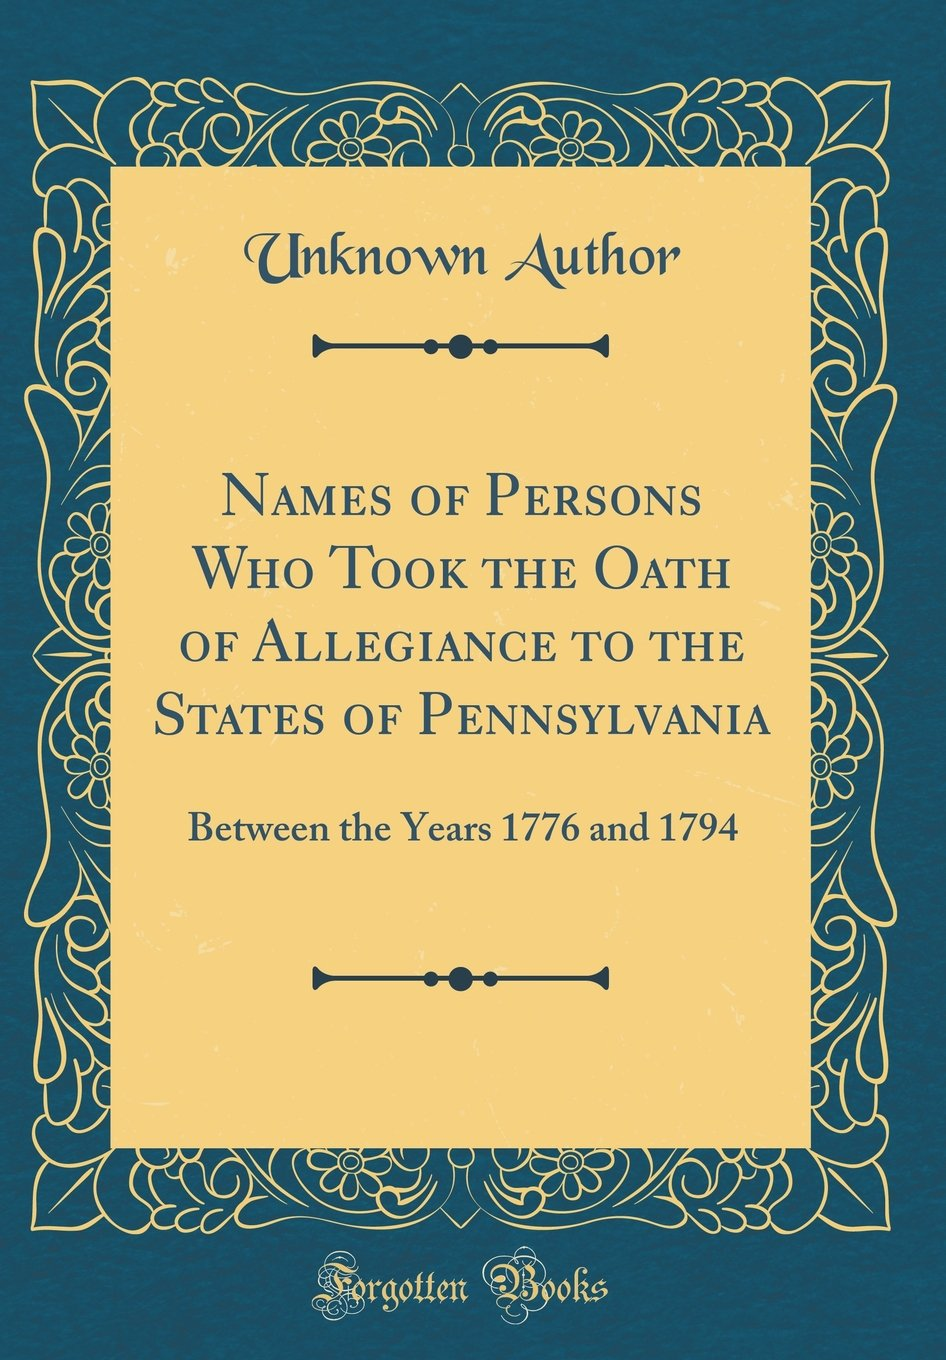 Download Names of Persons Who Took the Oath of Allegiance to the States of Pennsylvania: Between the Years 1776 and 1794 (Classic Reprint) PDF ePub fb2 book